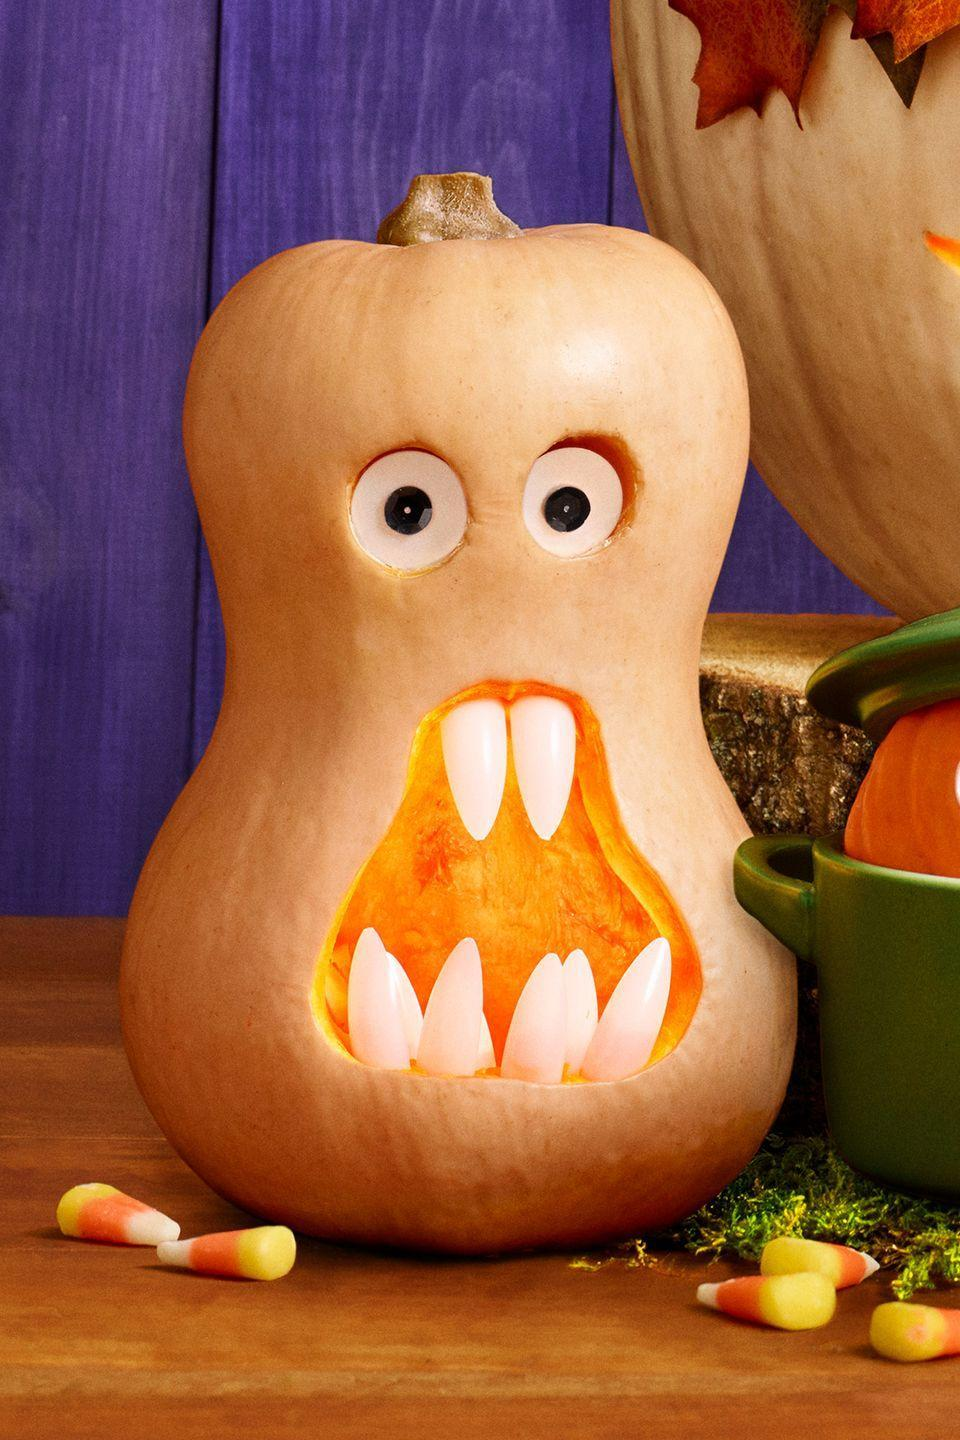 "<p>This surprised fella will look oh-so adorable on your stoop. Carve circle eyes and big mouth in any size squash. Push artificial nails into edge of mouth for teeth. For eyes, glue black sequin pupils to at seashell coins; push into place.</p><p><strong>What You'll Need: </strong><a href=""https://www.amazon.com/Makartt-500pcs-Natural-Acrylic-Ballerina/dp/B06XRYT918/?tag=syn-yahoo-20&ascsubtag=%5Bartid%7C10070.g.950%5Bsrc%7Cyahoo-us"" rel=""nofollow noopener"" target=""_blank"" data-ylk=""slk:Artificial nails"" class=""link rapid-noclick-resp"">Artificial nails</a> ($8 for 500, Amazon)</p>"